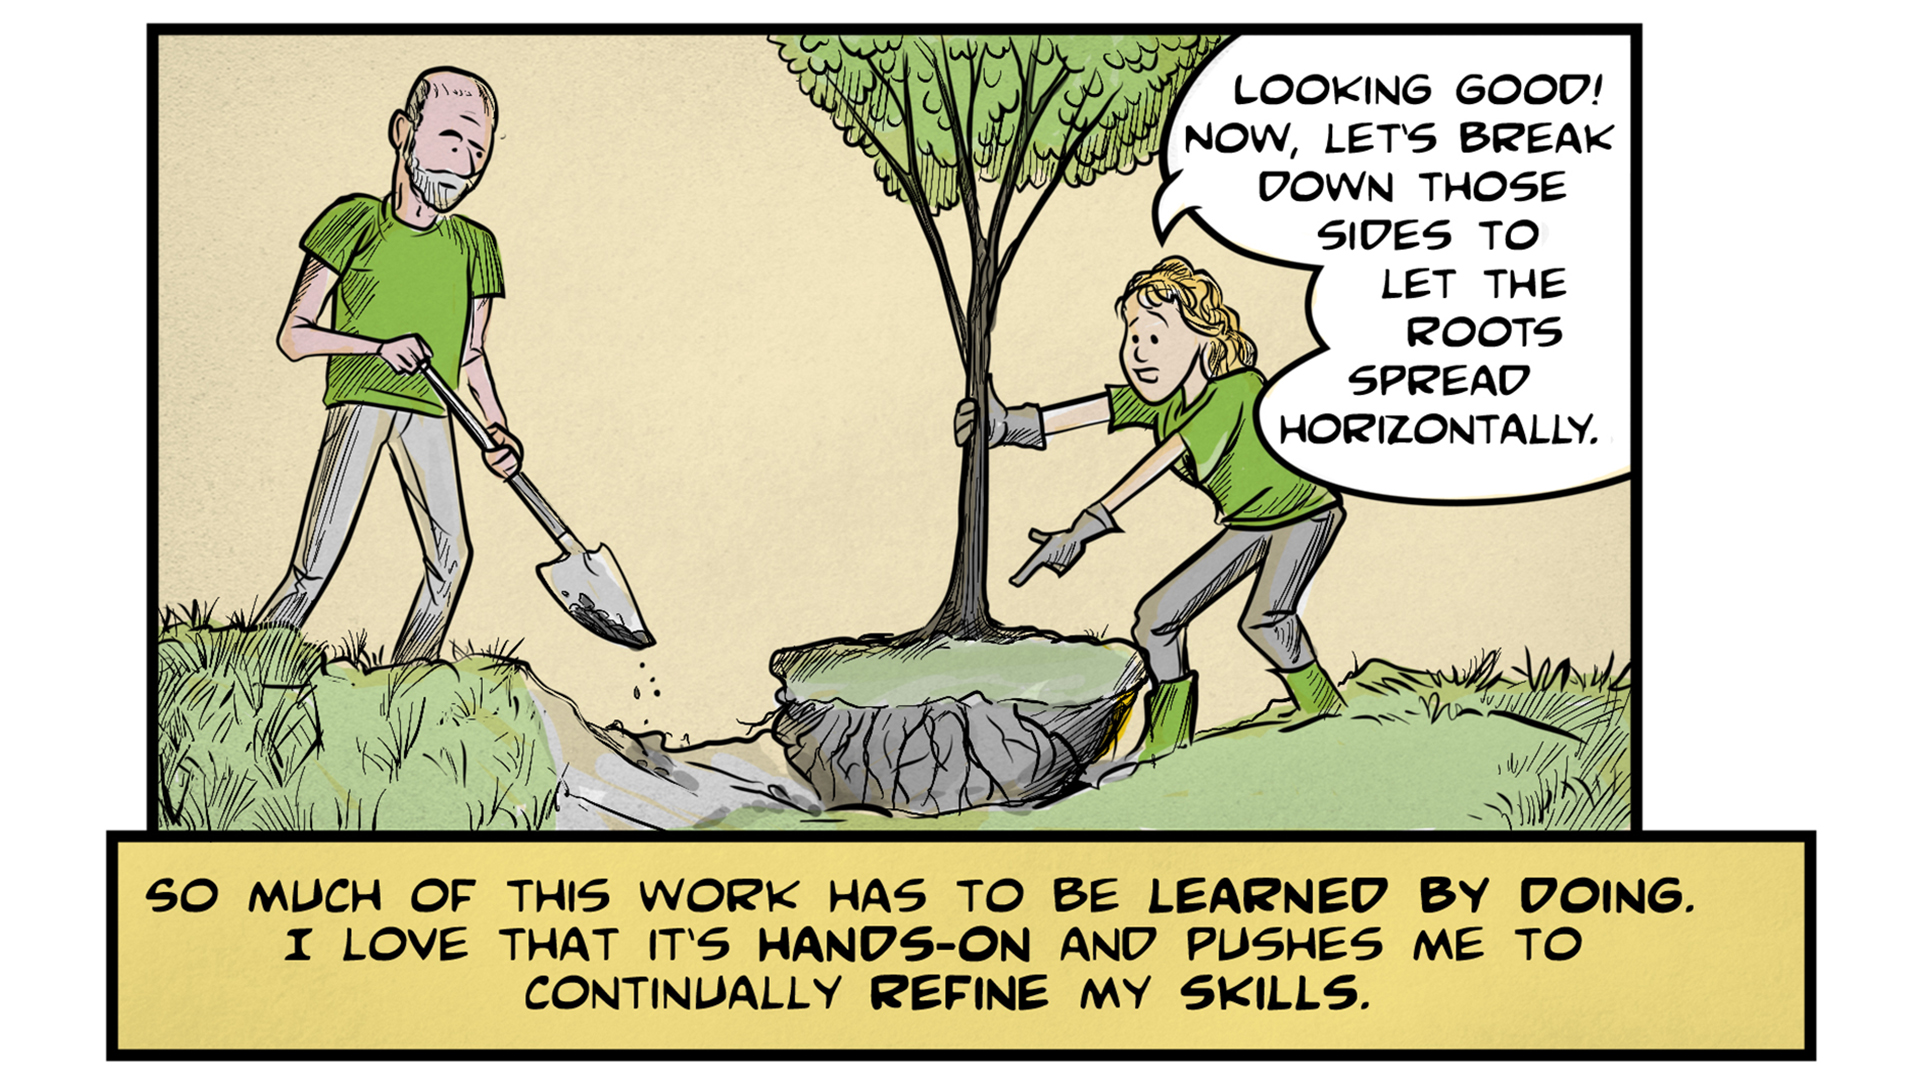 """Sasha, the narrator, says, """"So much of this work has to be learned by doing. I love that it's hands-on and pushes me to continually refine my skills."""" A man with a shovel stands near a large hole, ready to dig. Sasha, wearing work gloves, holds onto the trunk of a young tree that they are about to plant. She says, """"Looking good! Now, let's break down those sides to let the roots spread horizontally."""""""